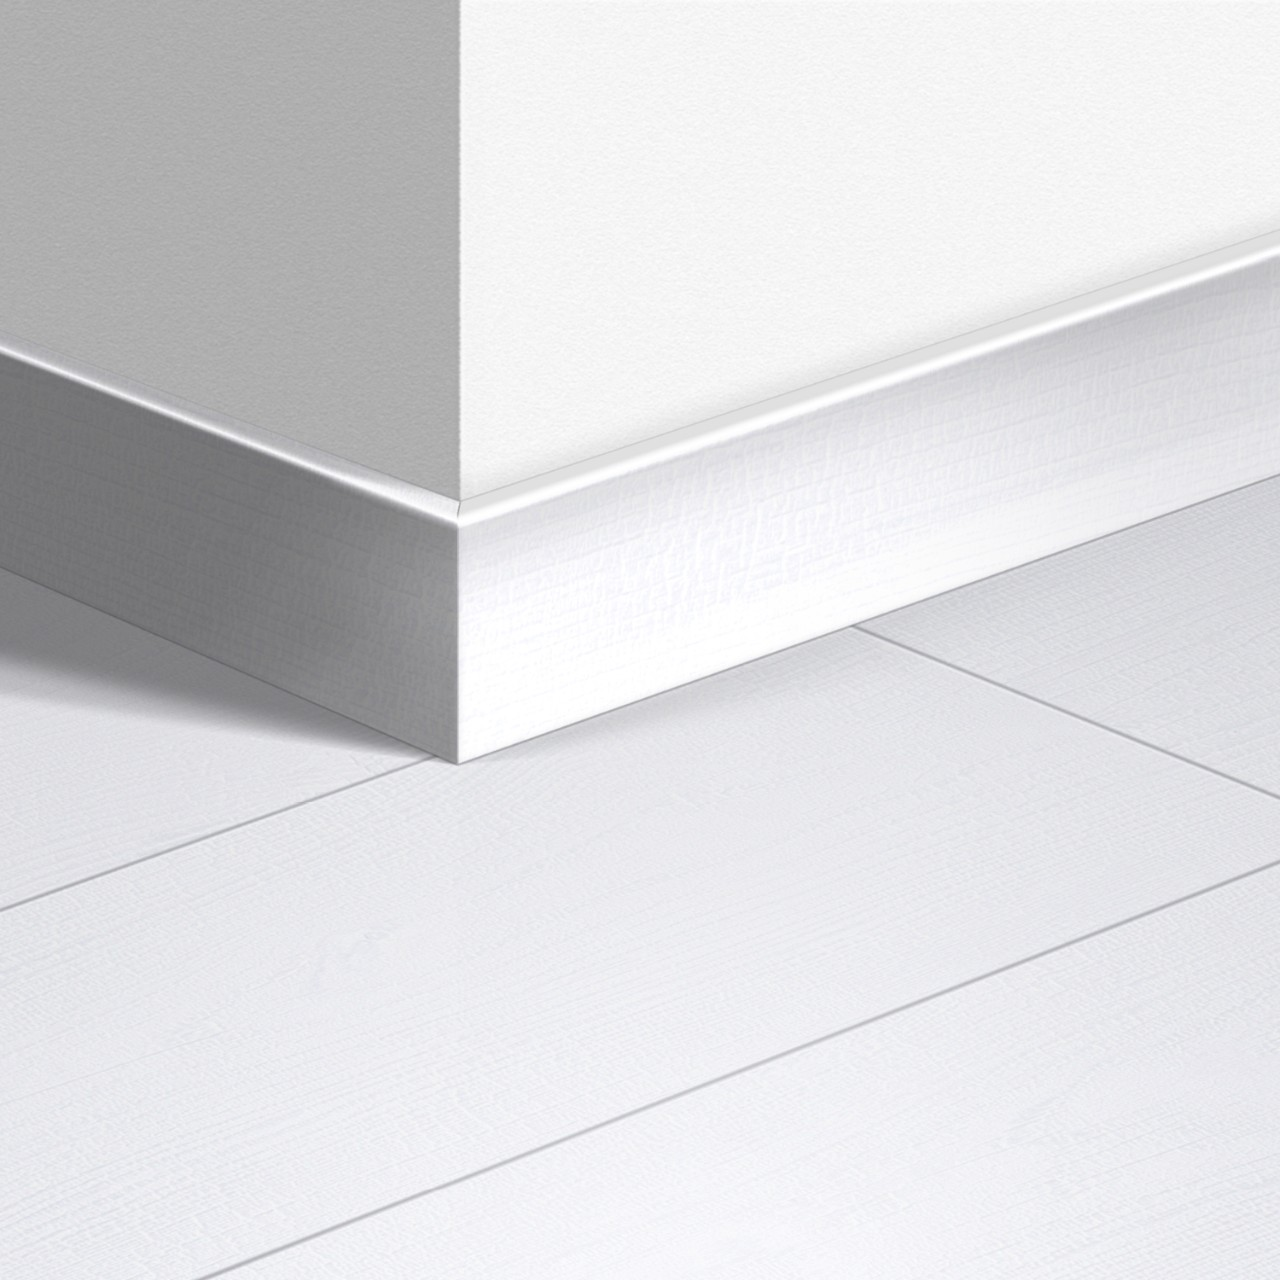 QSPSKR Laminate Accessories White planks QSPSKR01859